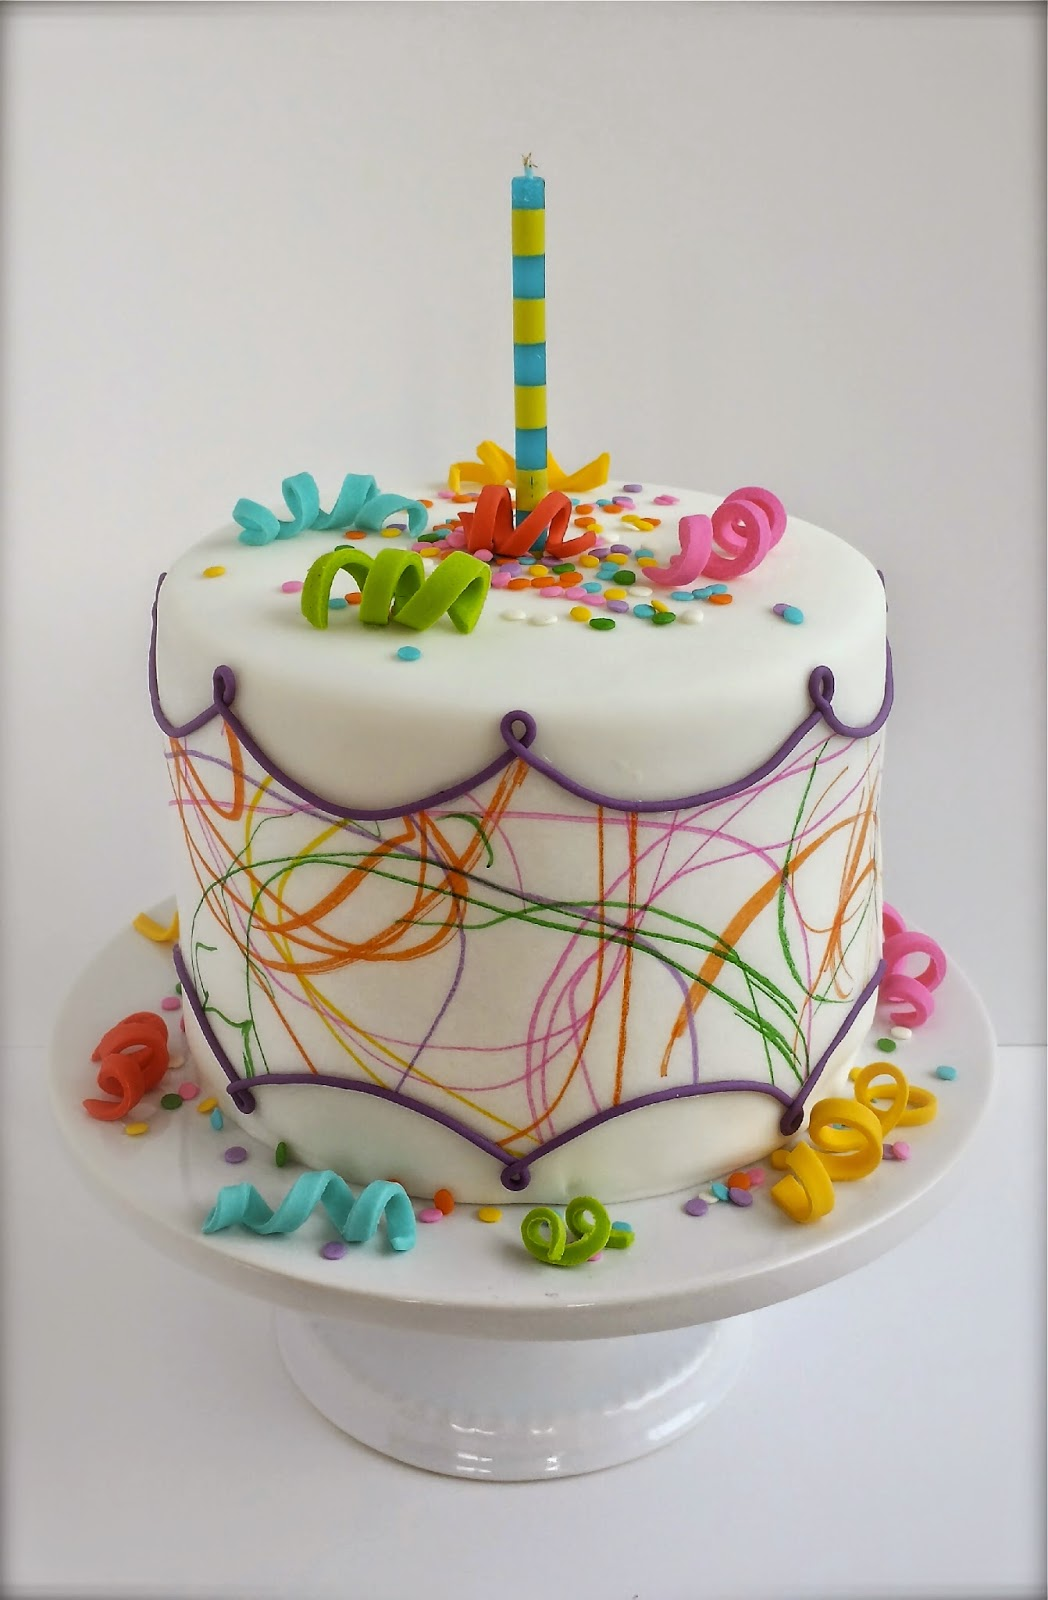 Cake Blog: Toddler Art Birthday Cake